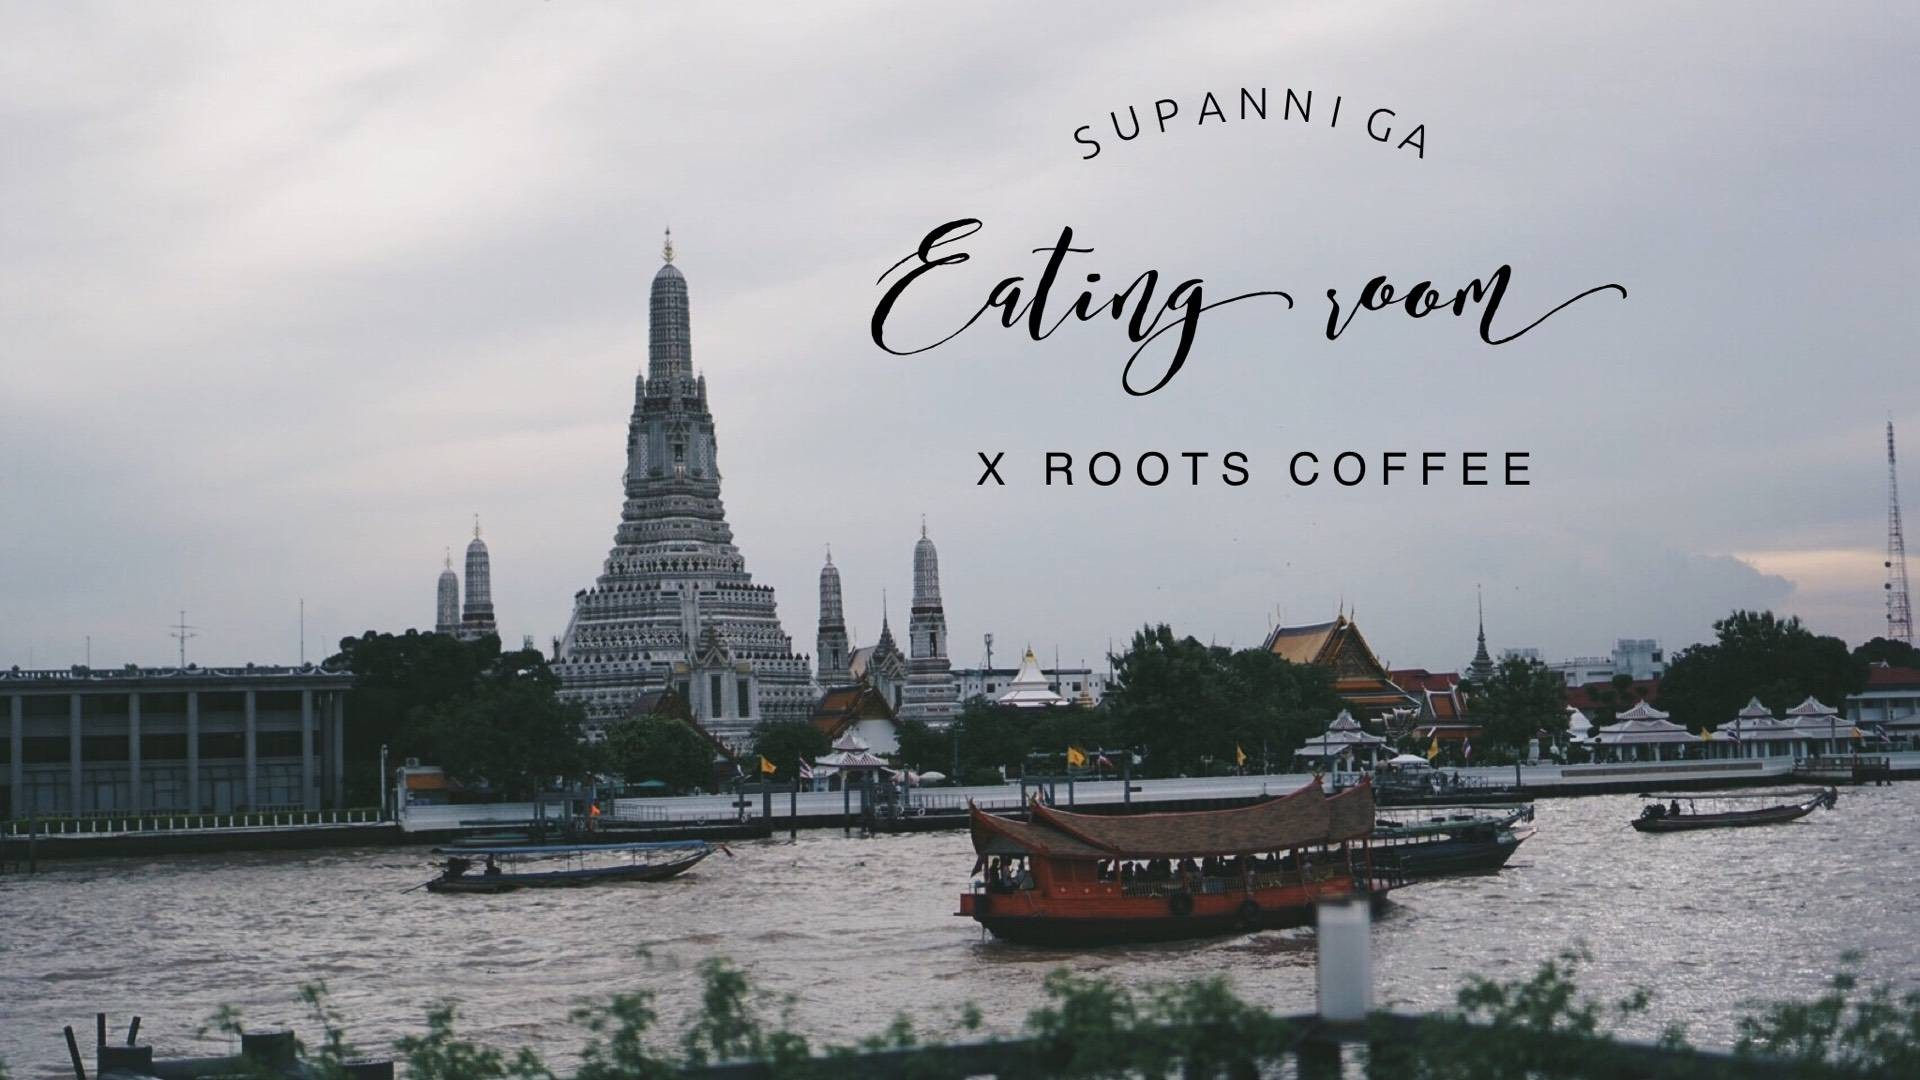 Supanniga Eating Room X Roots Coffee ท่าเตียน